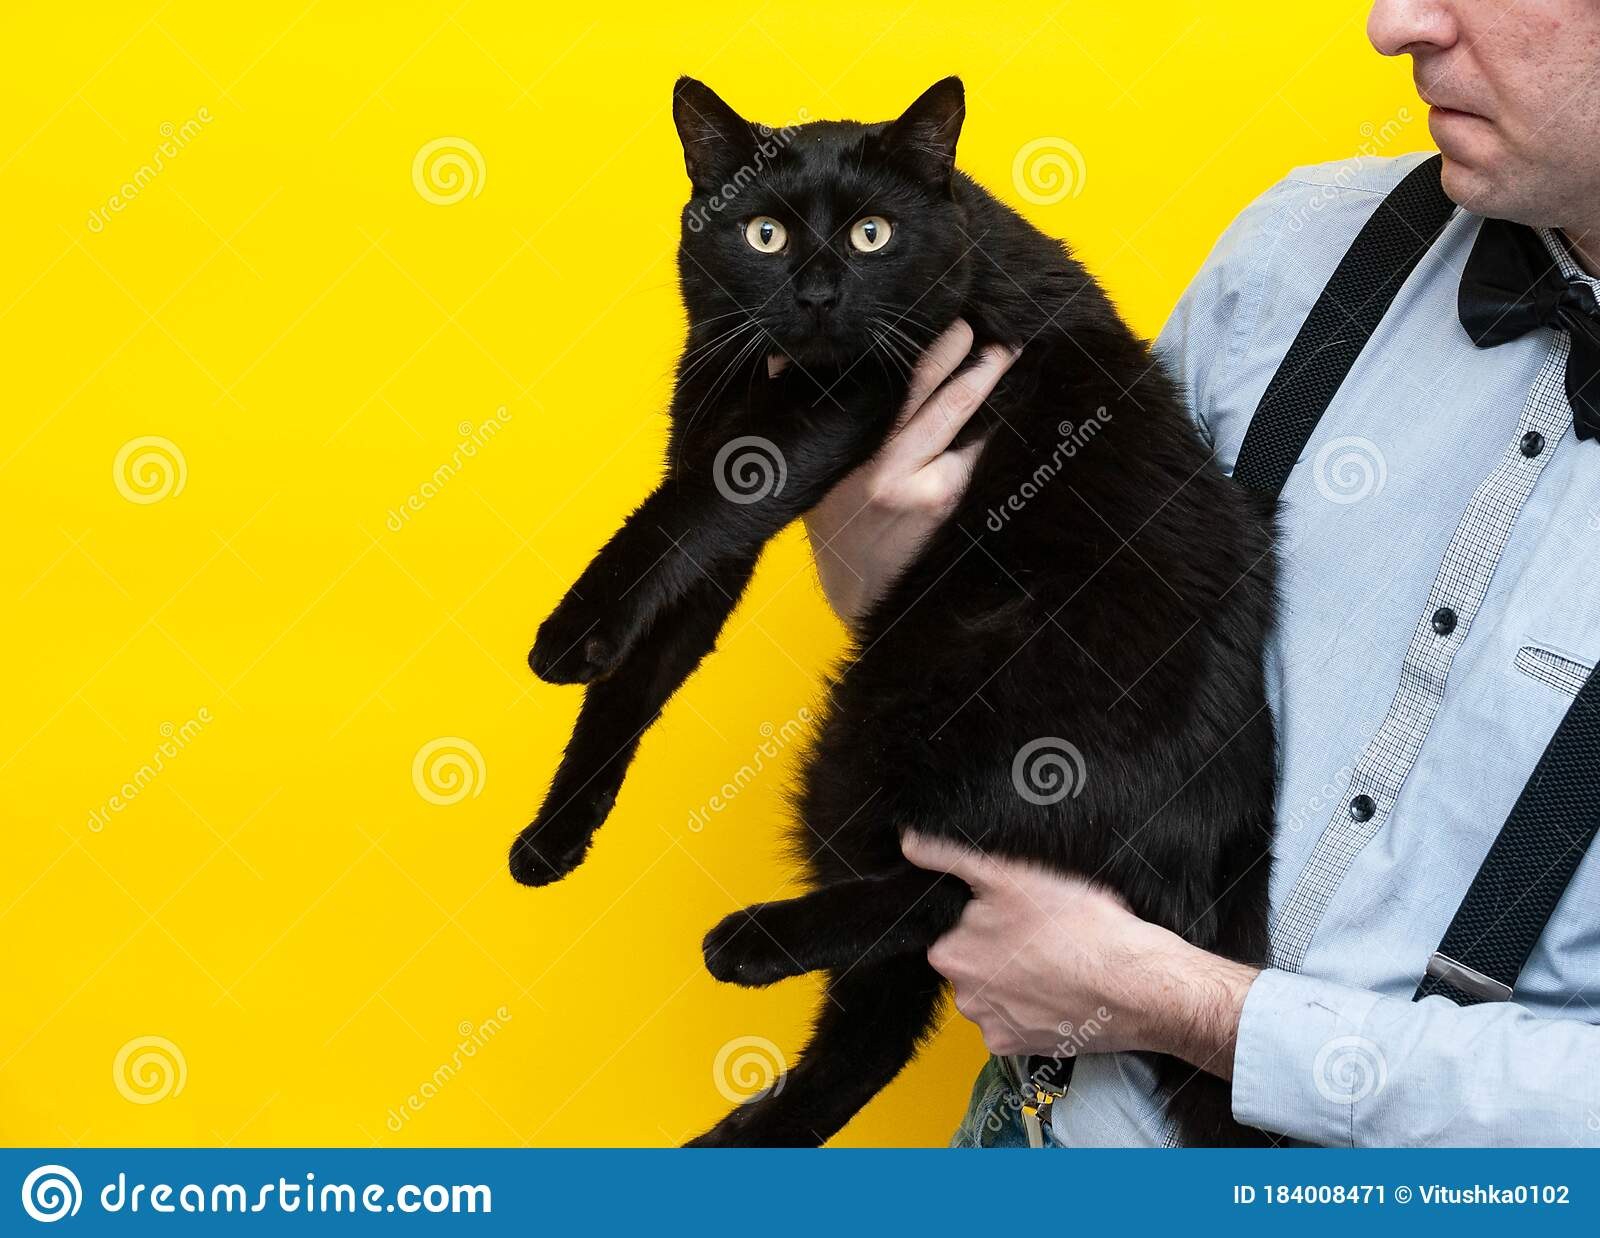 Man Holding Scared Big Fat Black Cat On Yellow Background Stock Image Image Of Emotion Paws 184008471